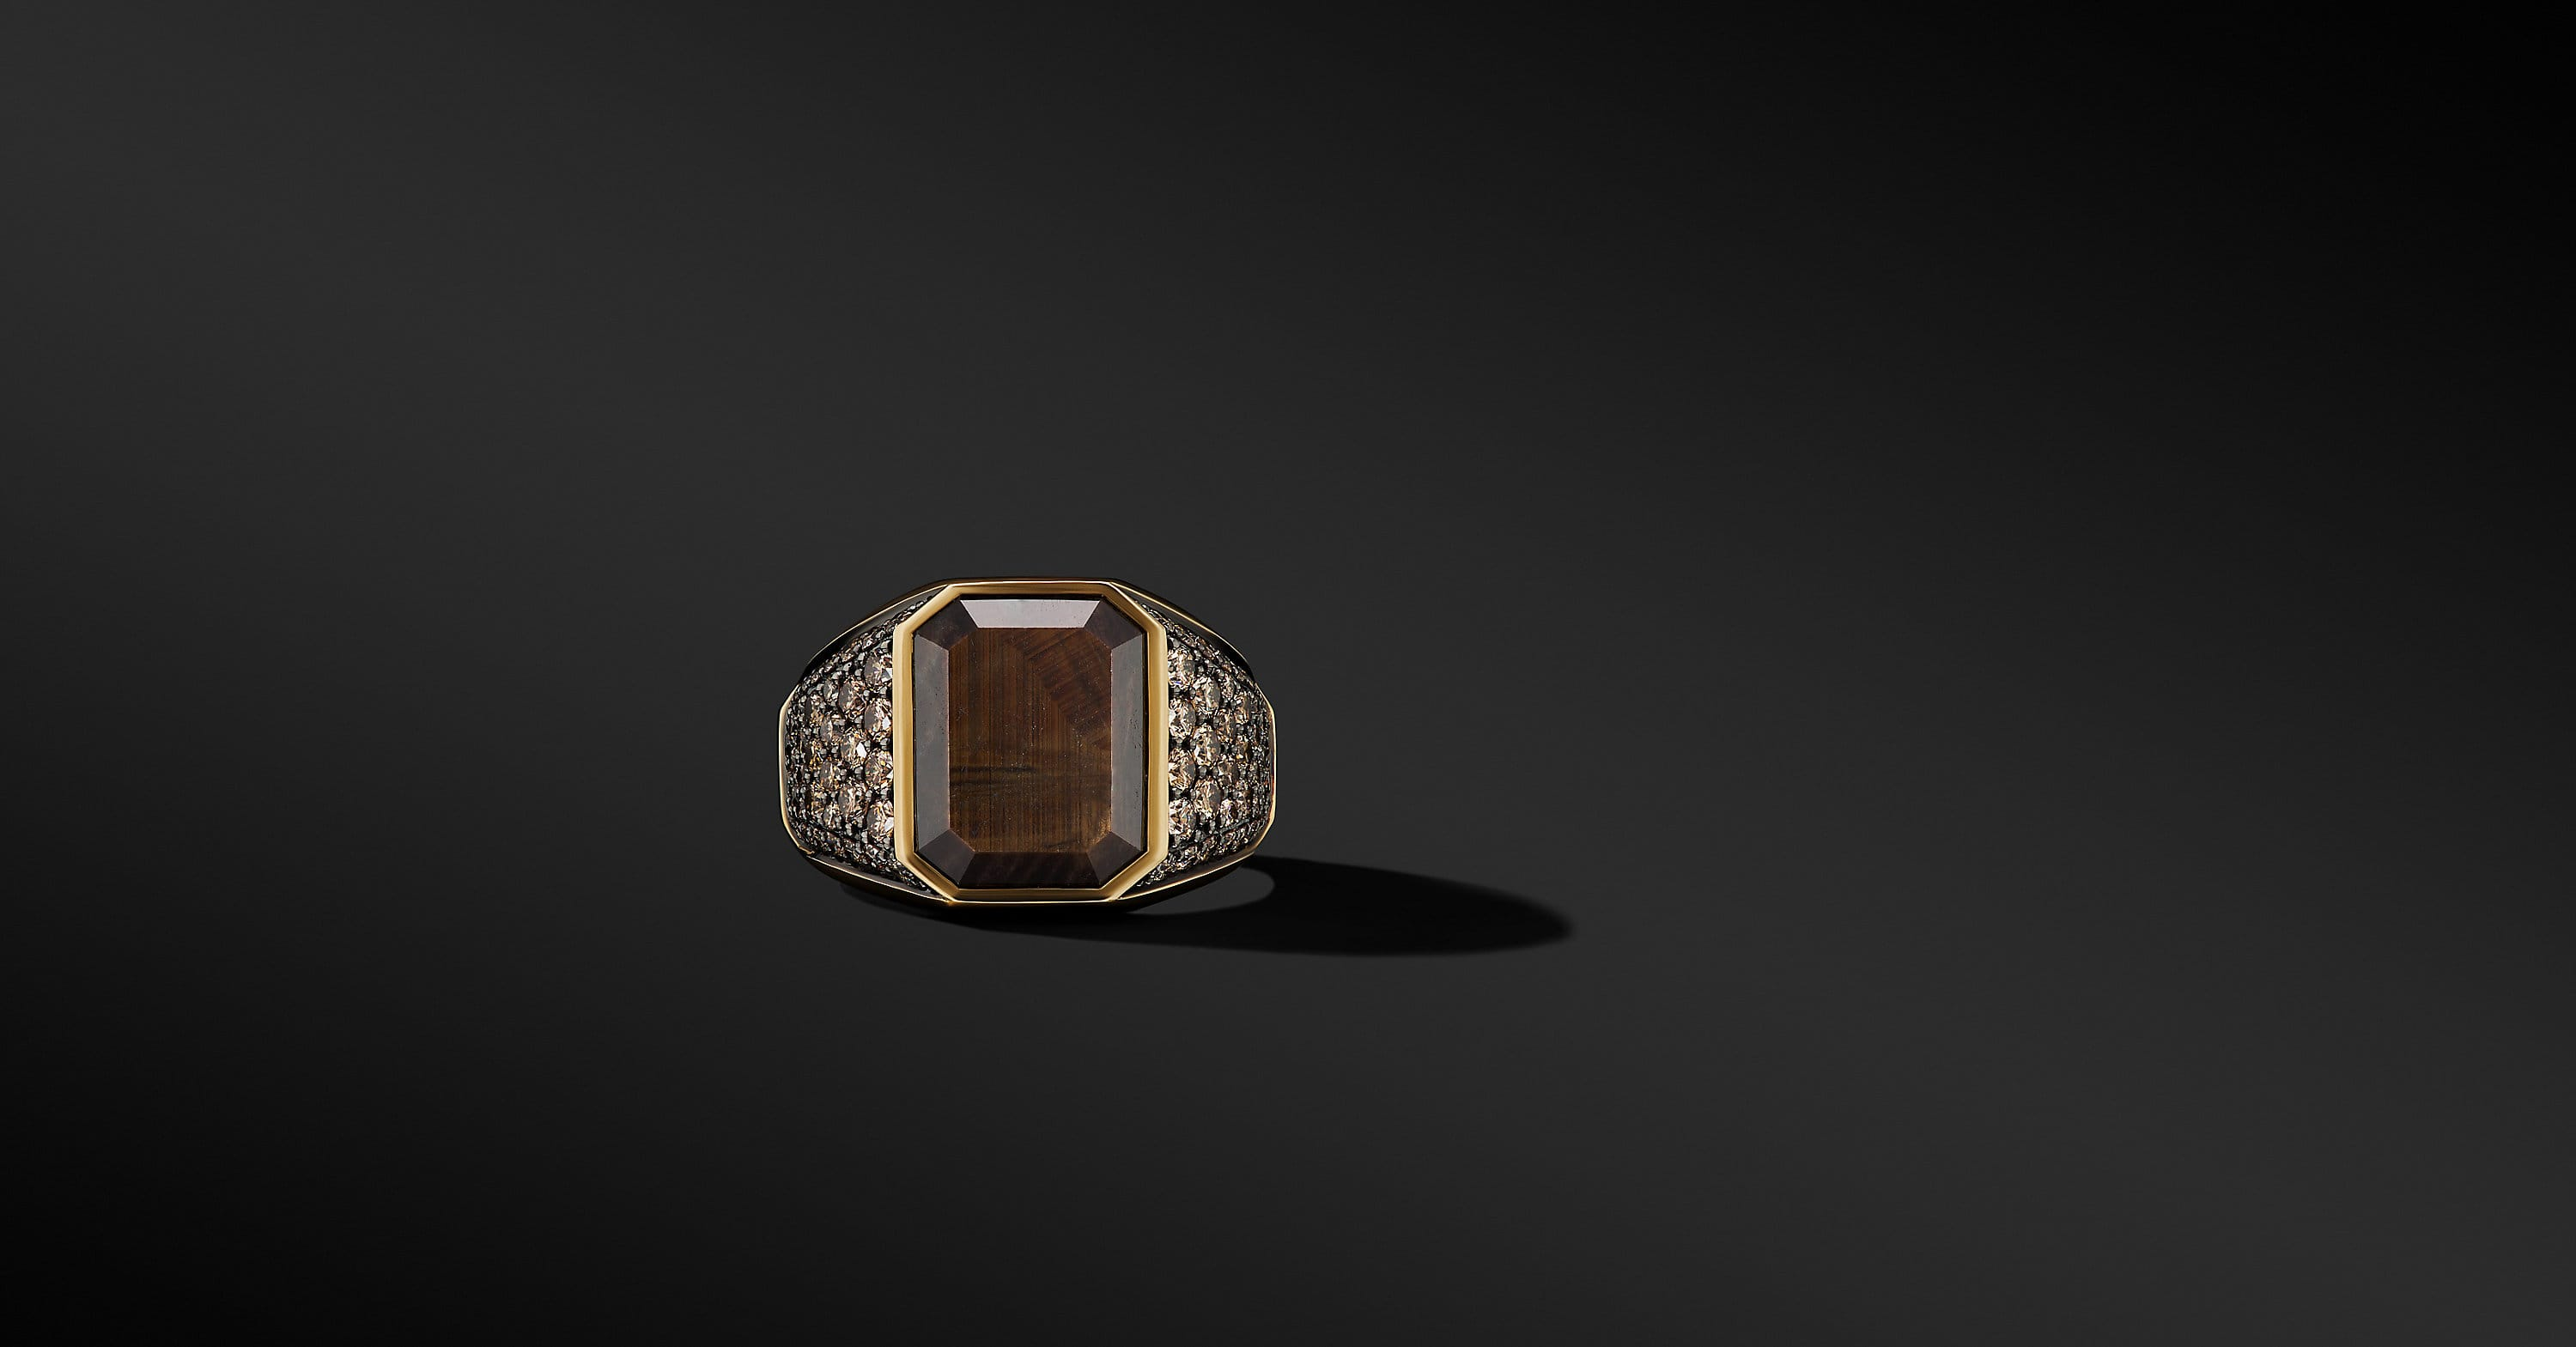 Heirloom Signet Ring in 18K Yellow Gold with Pavé, 17mm